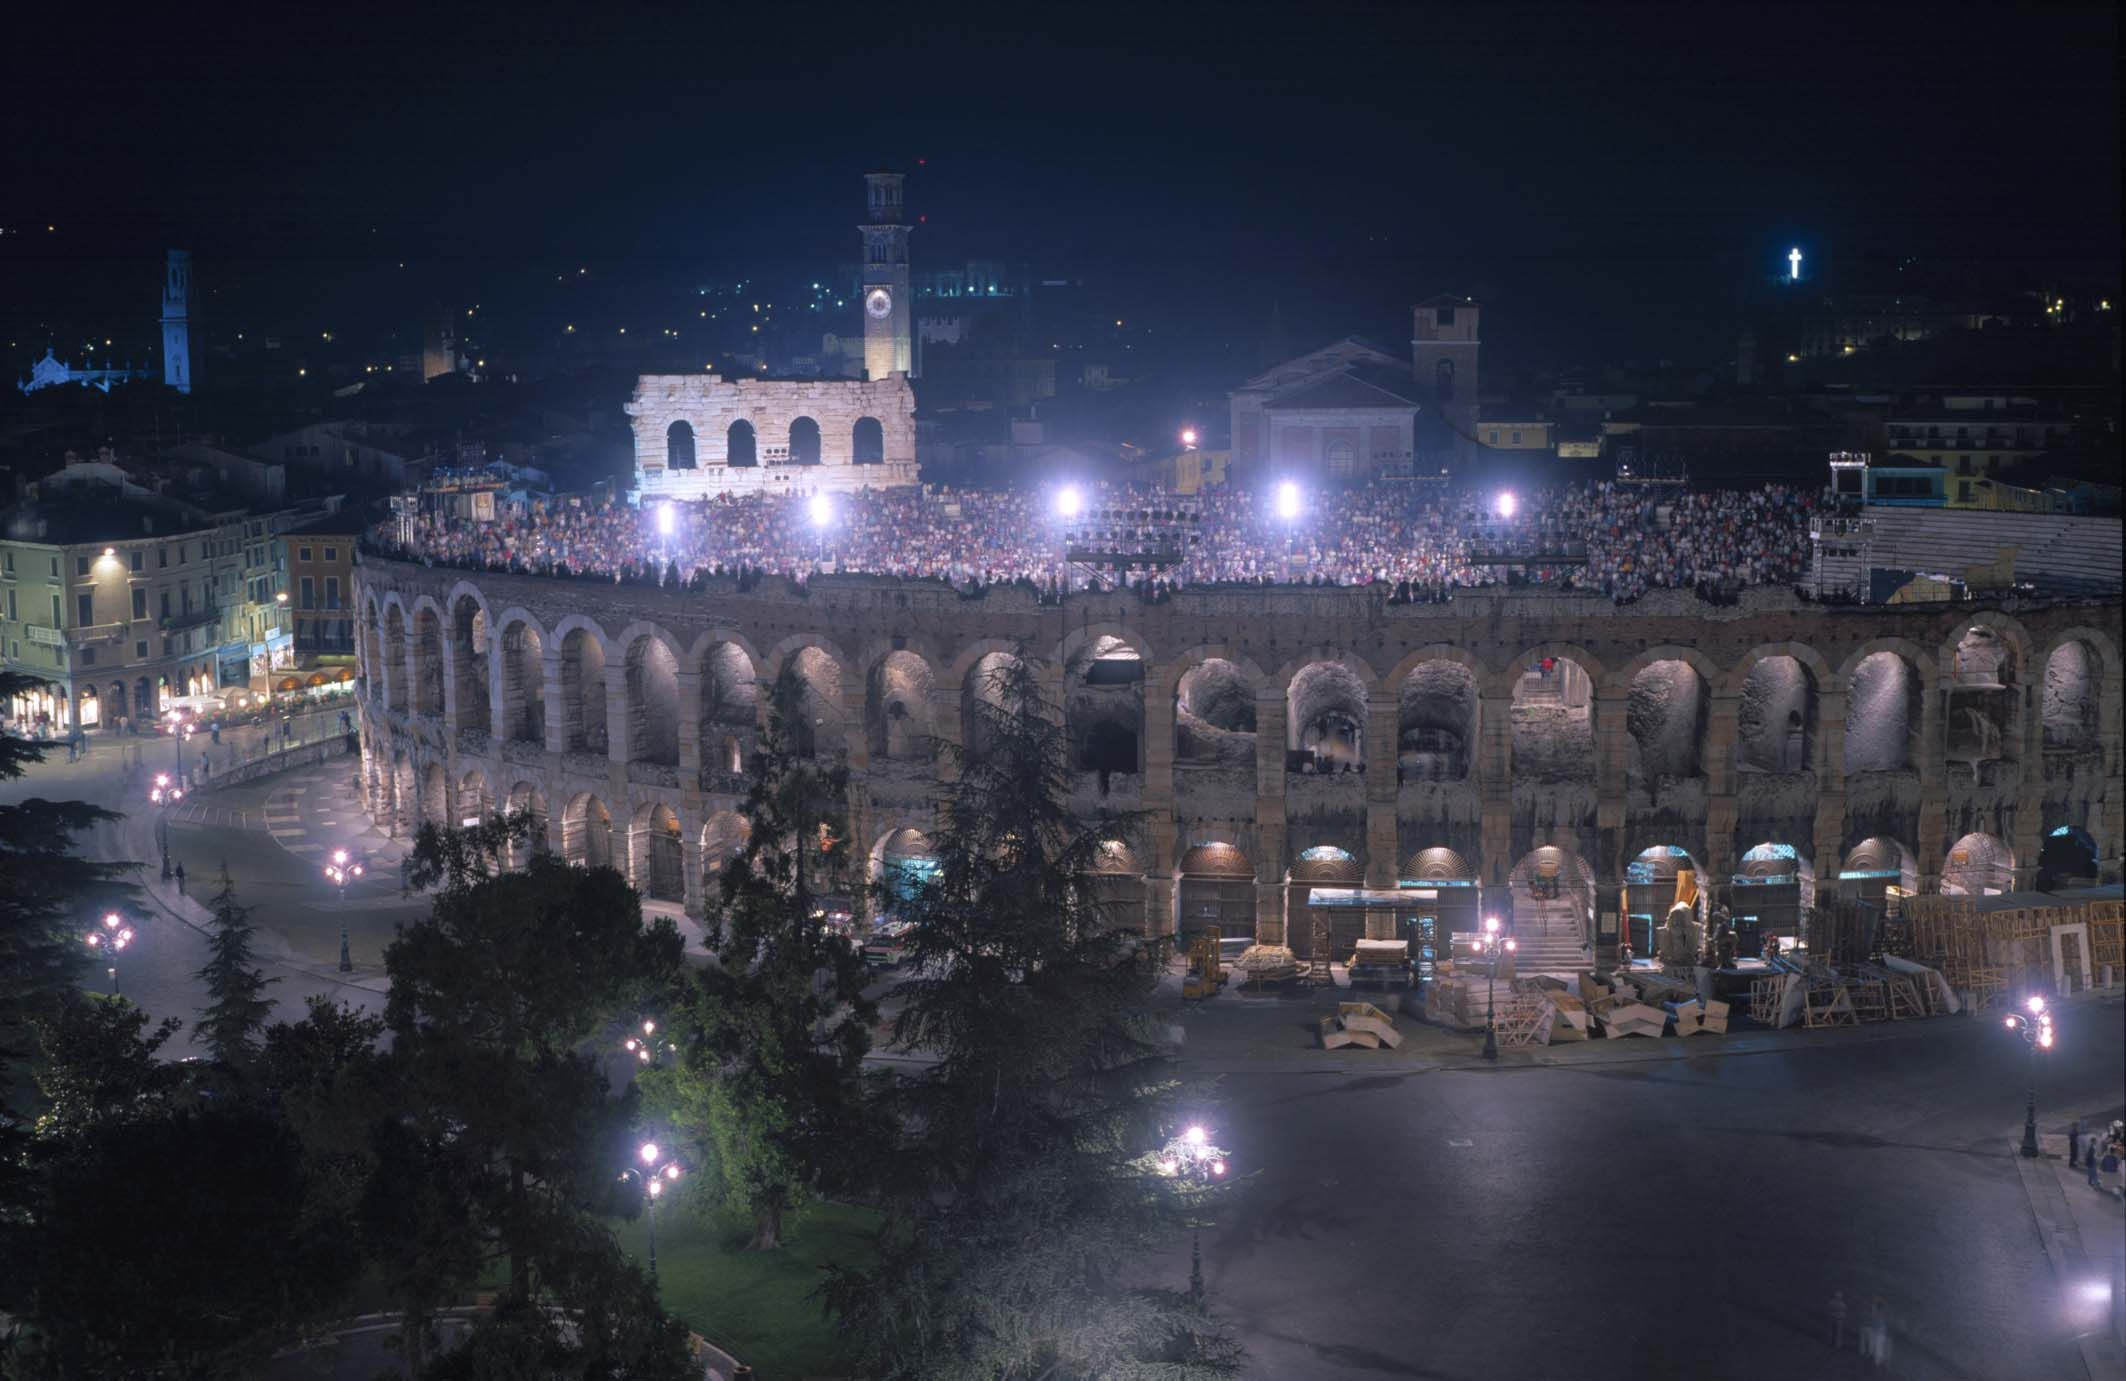 verona_arena-di-verona_-4-foto-by-gianfranco-fainello-copyright-fondazione-aren